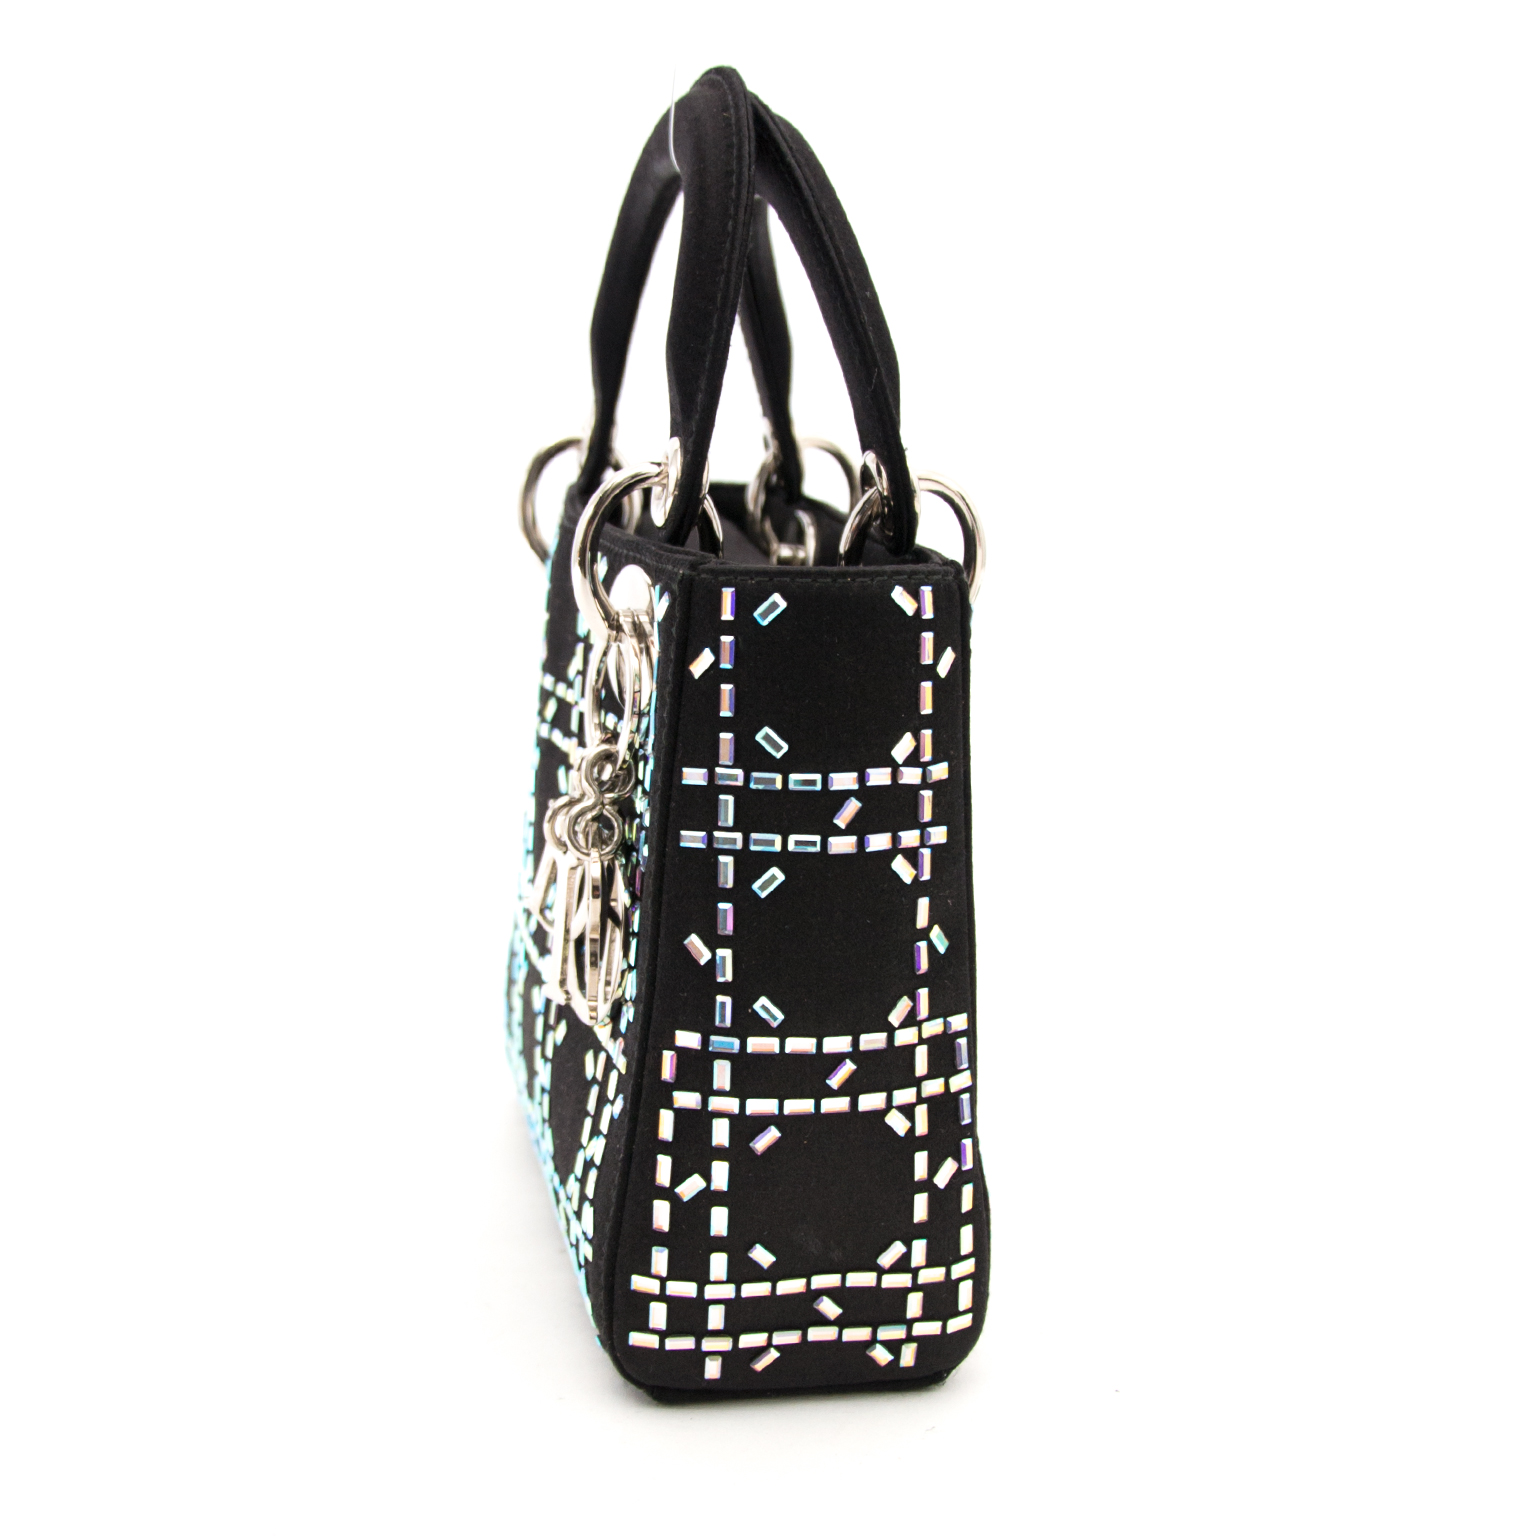 Mini Embellished Lady Dior Bag for sale at the right price at Labellov.com